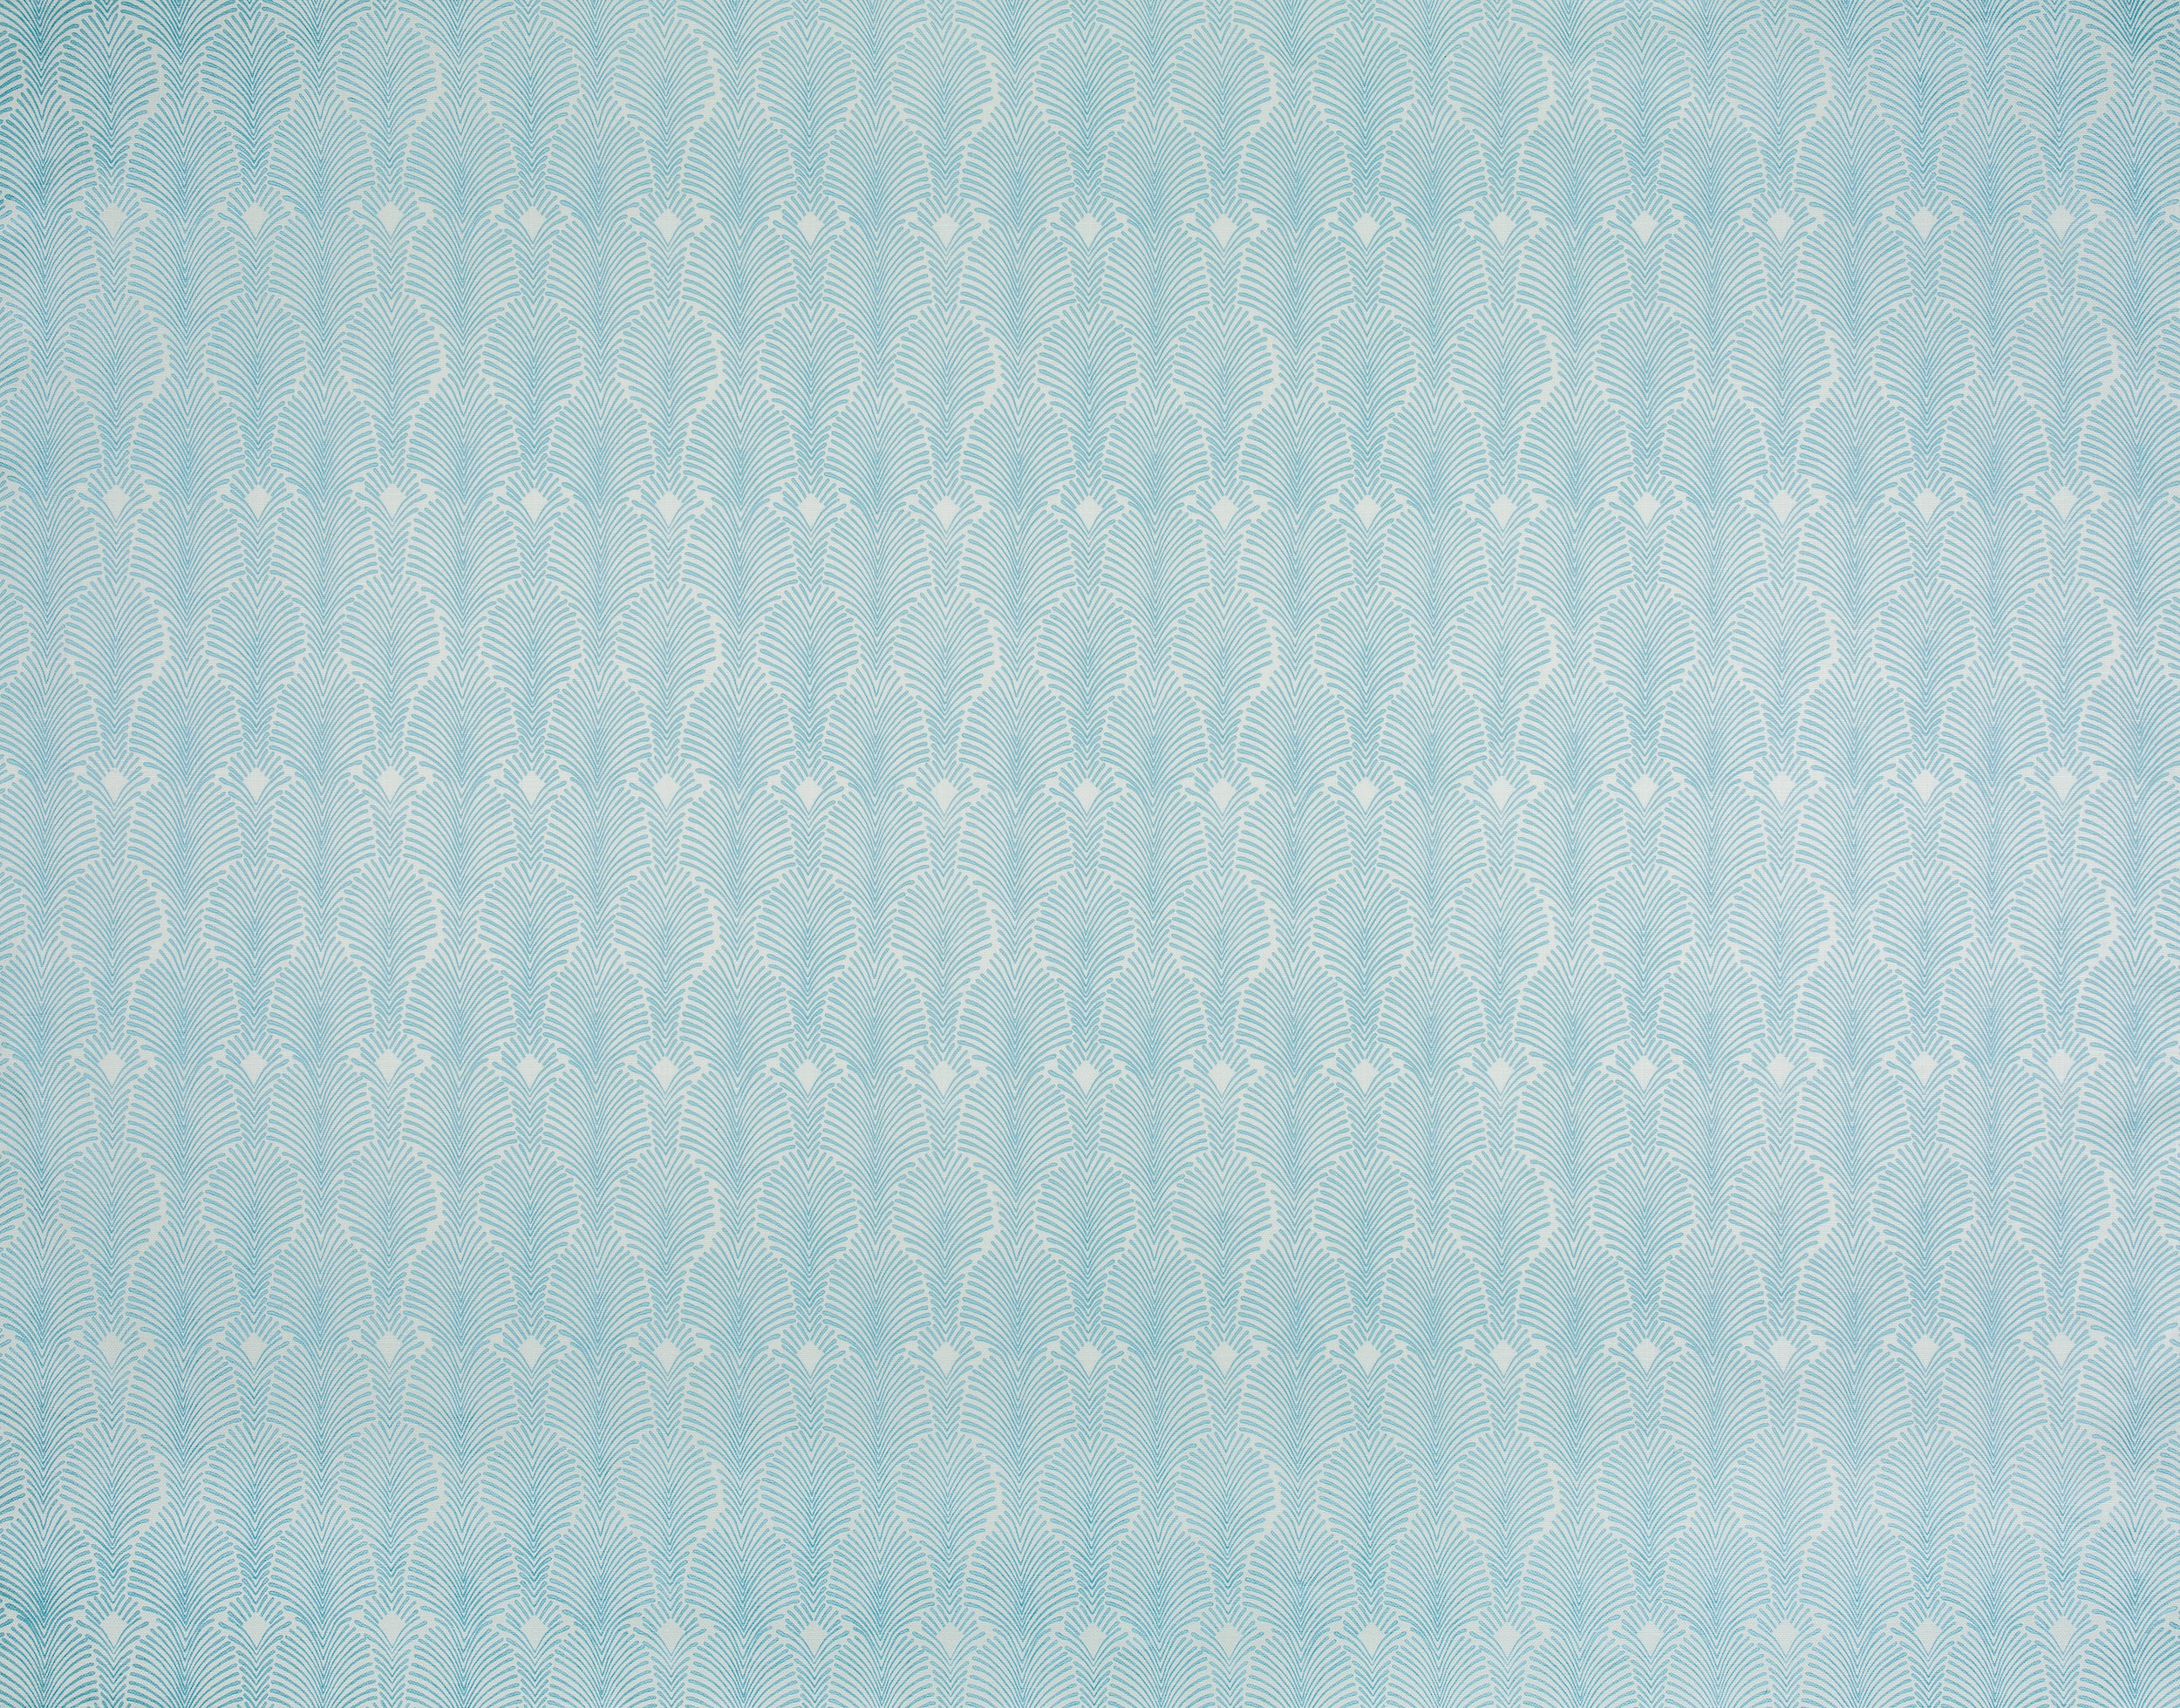 1W6A0940DecoStripe_GrayBlue-2.jpg